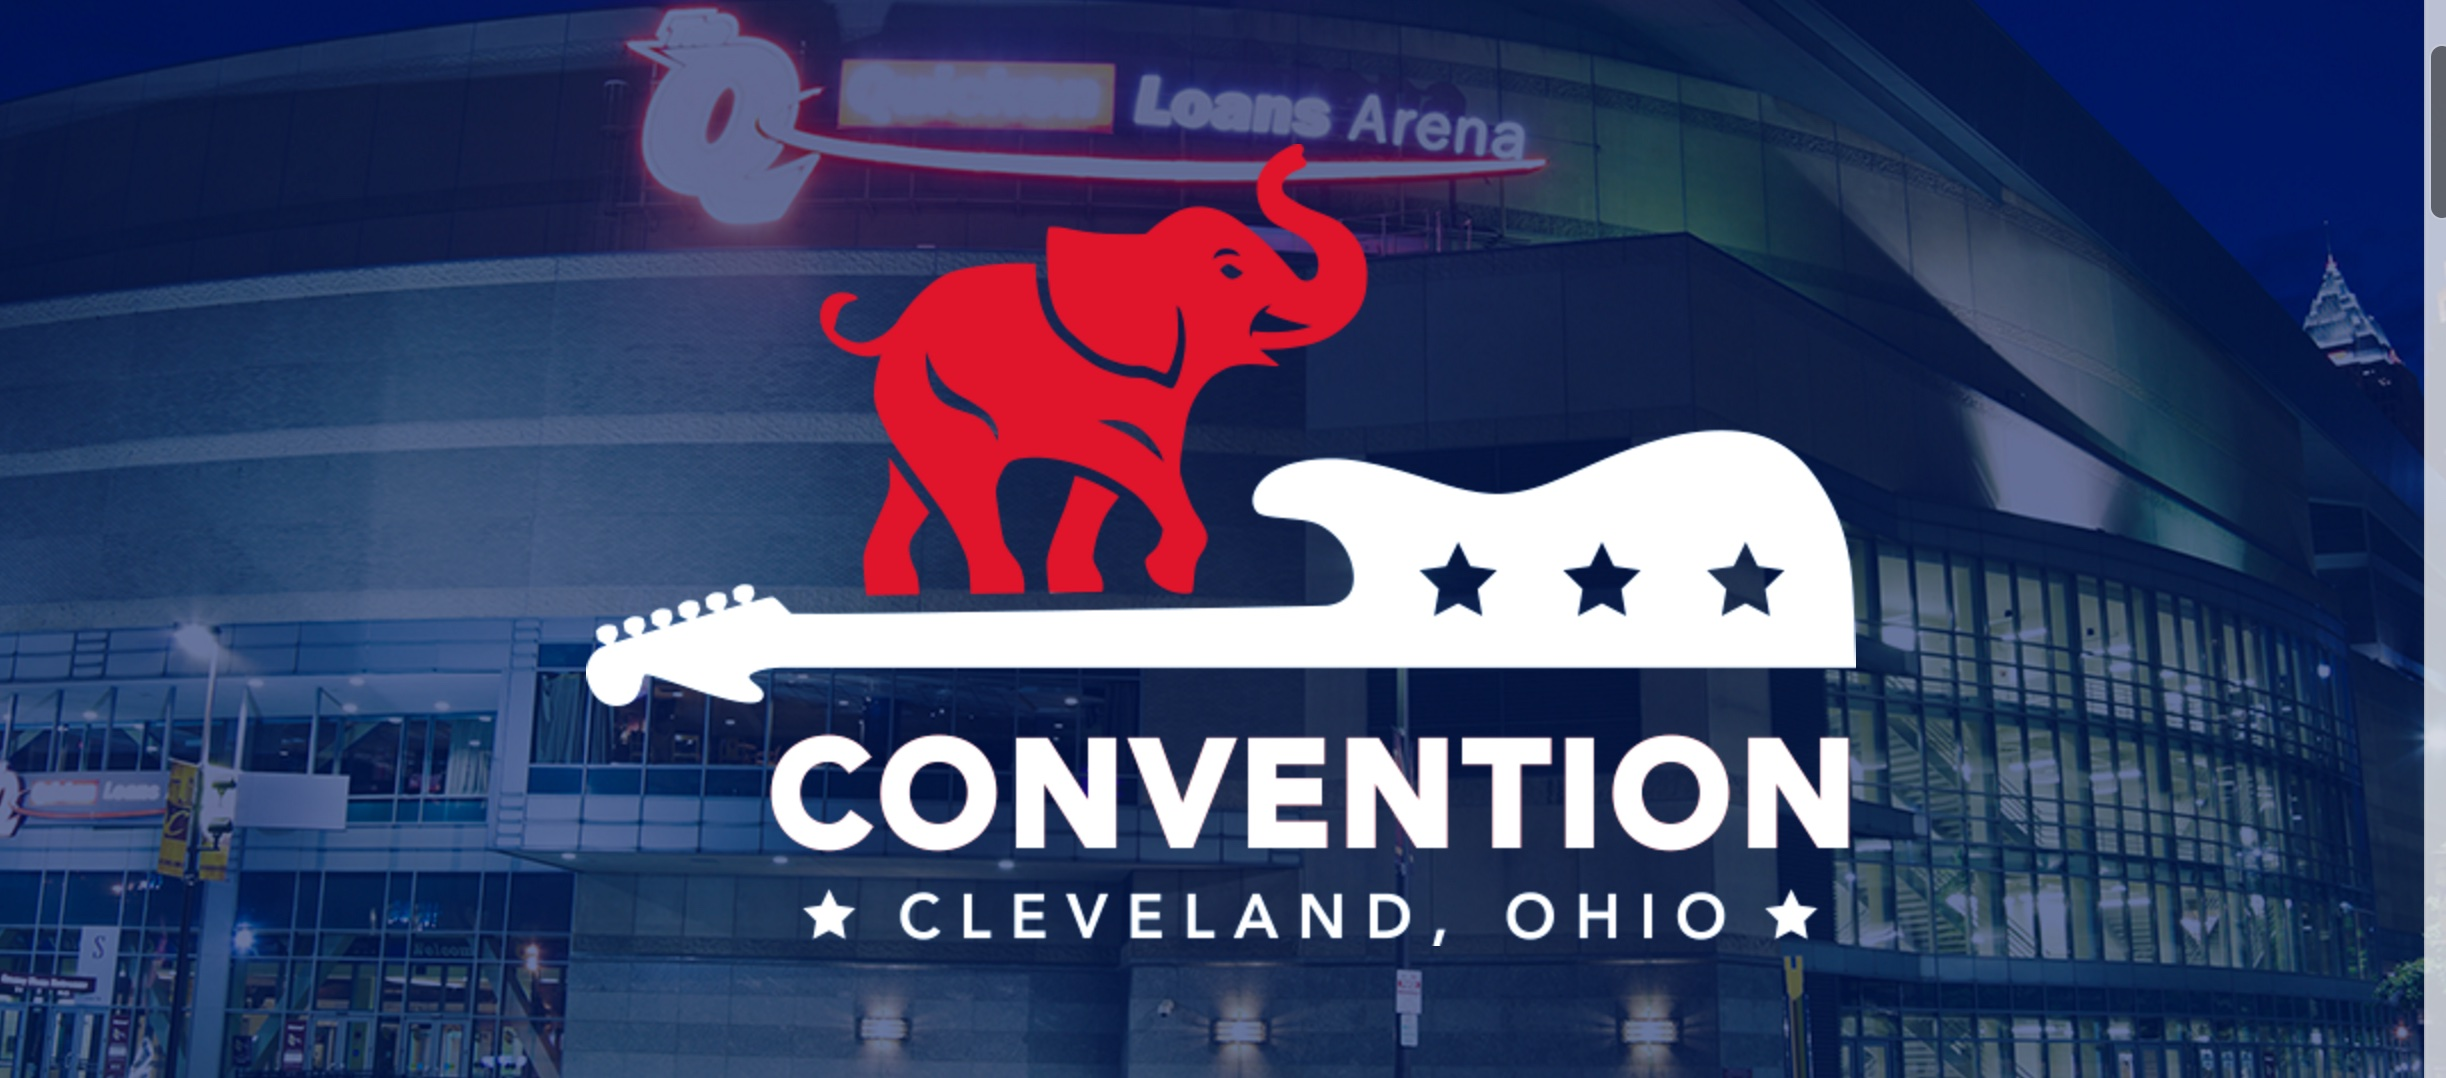 Opinion: The Petition to Carry at the GOP Convention is Silliness